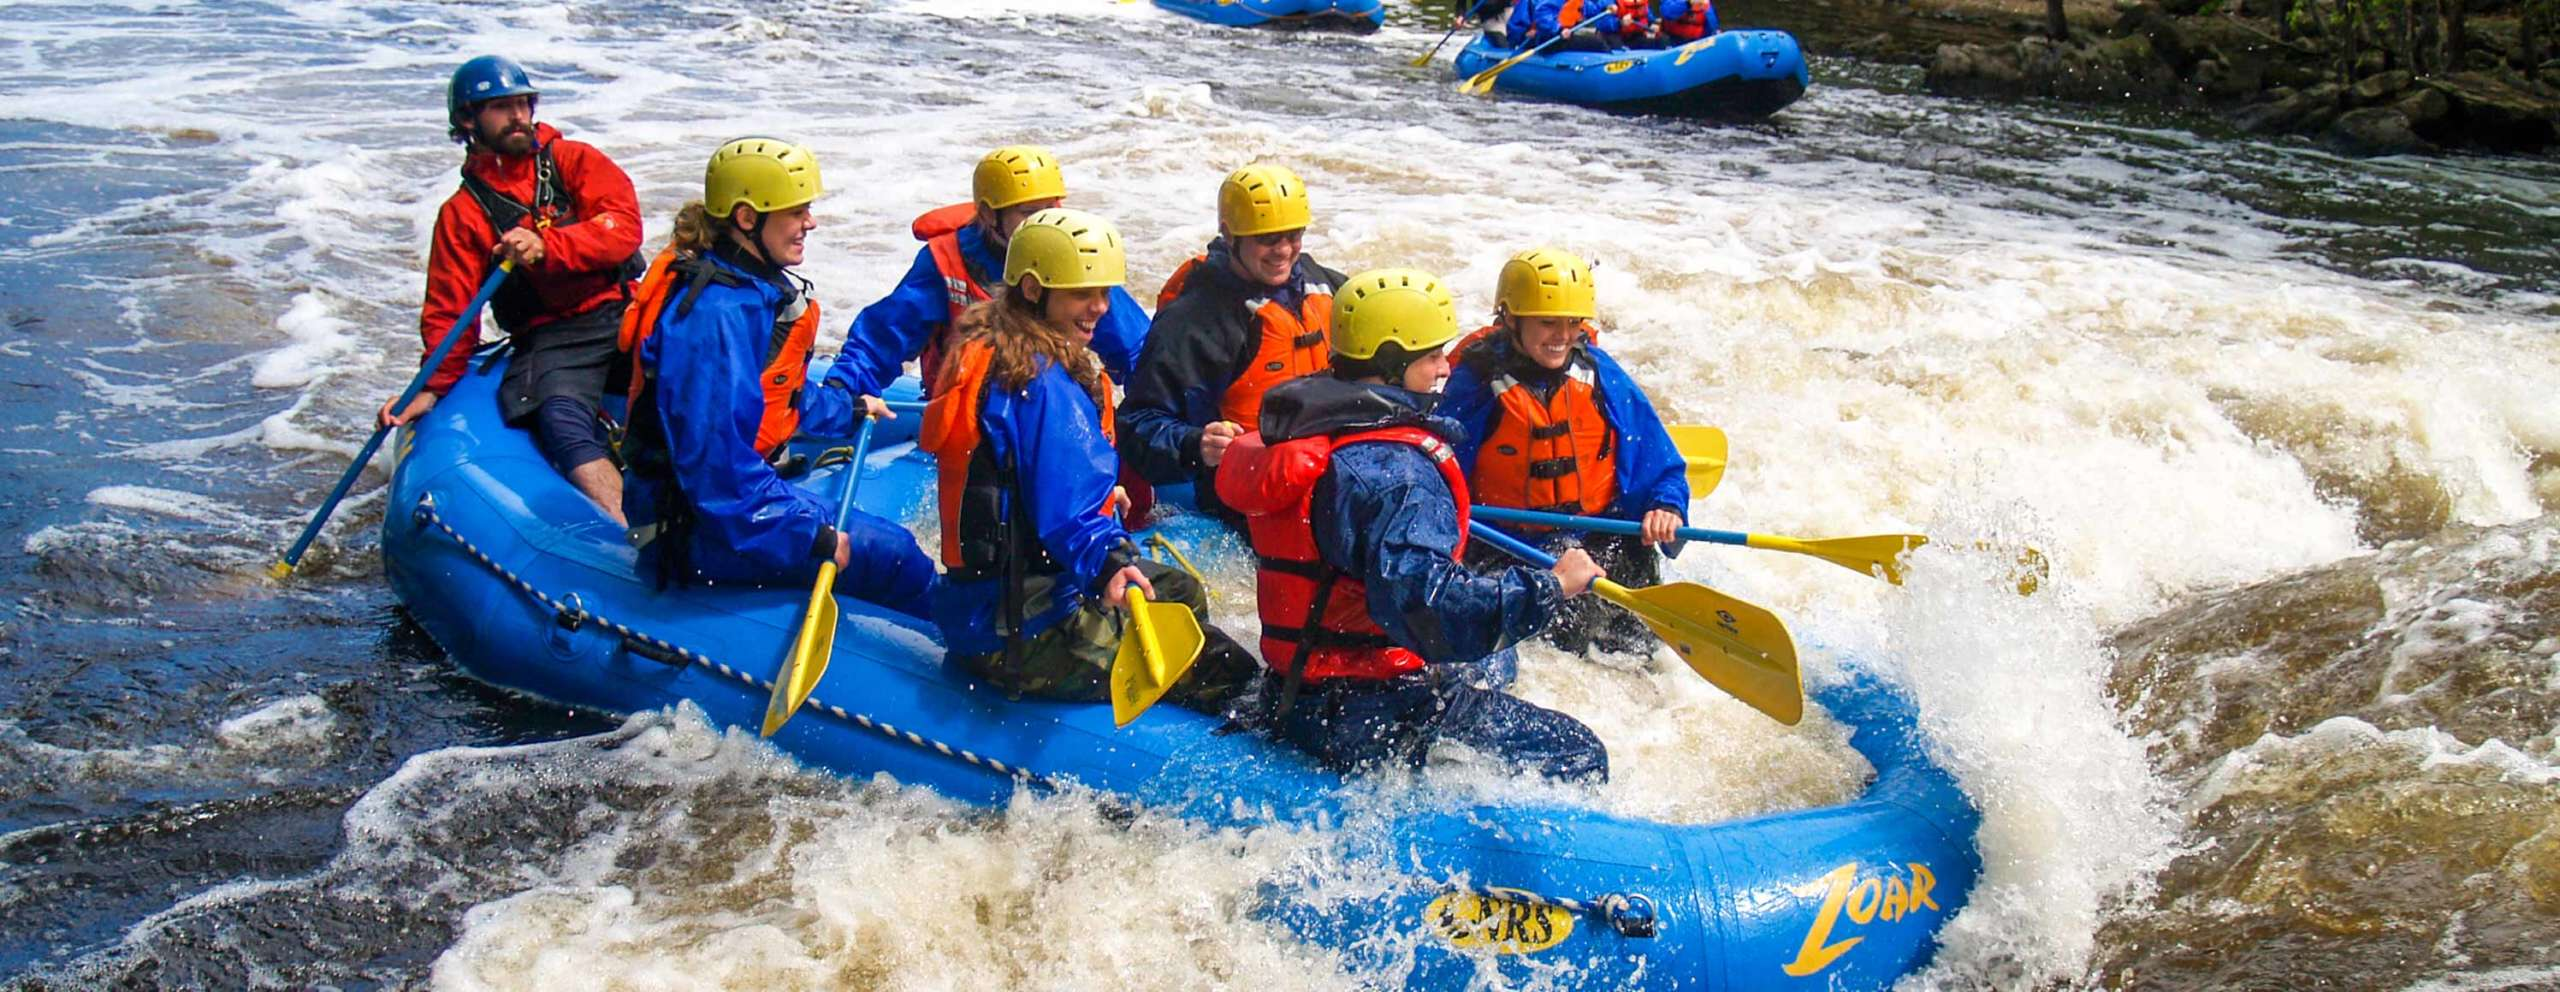 Group of people rafting in rapids